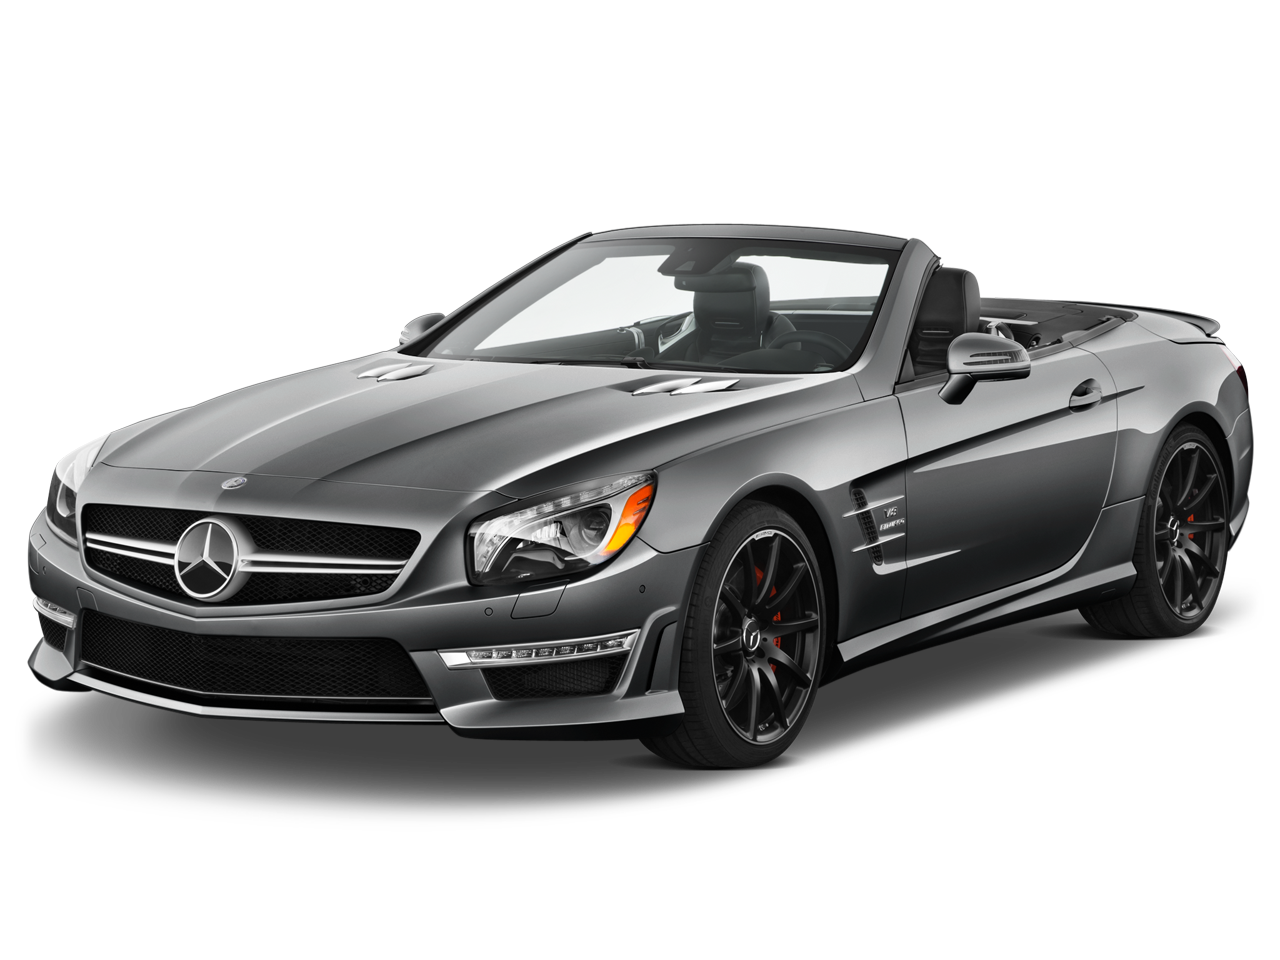 Mercedes Png Image Purepng Free Transparent Cc0 Png Image Library